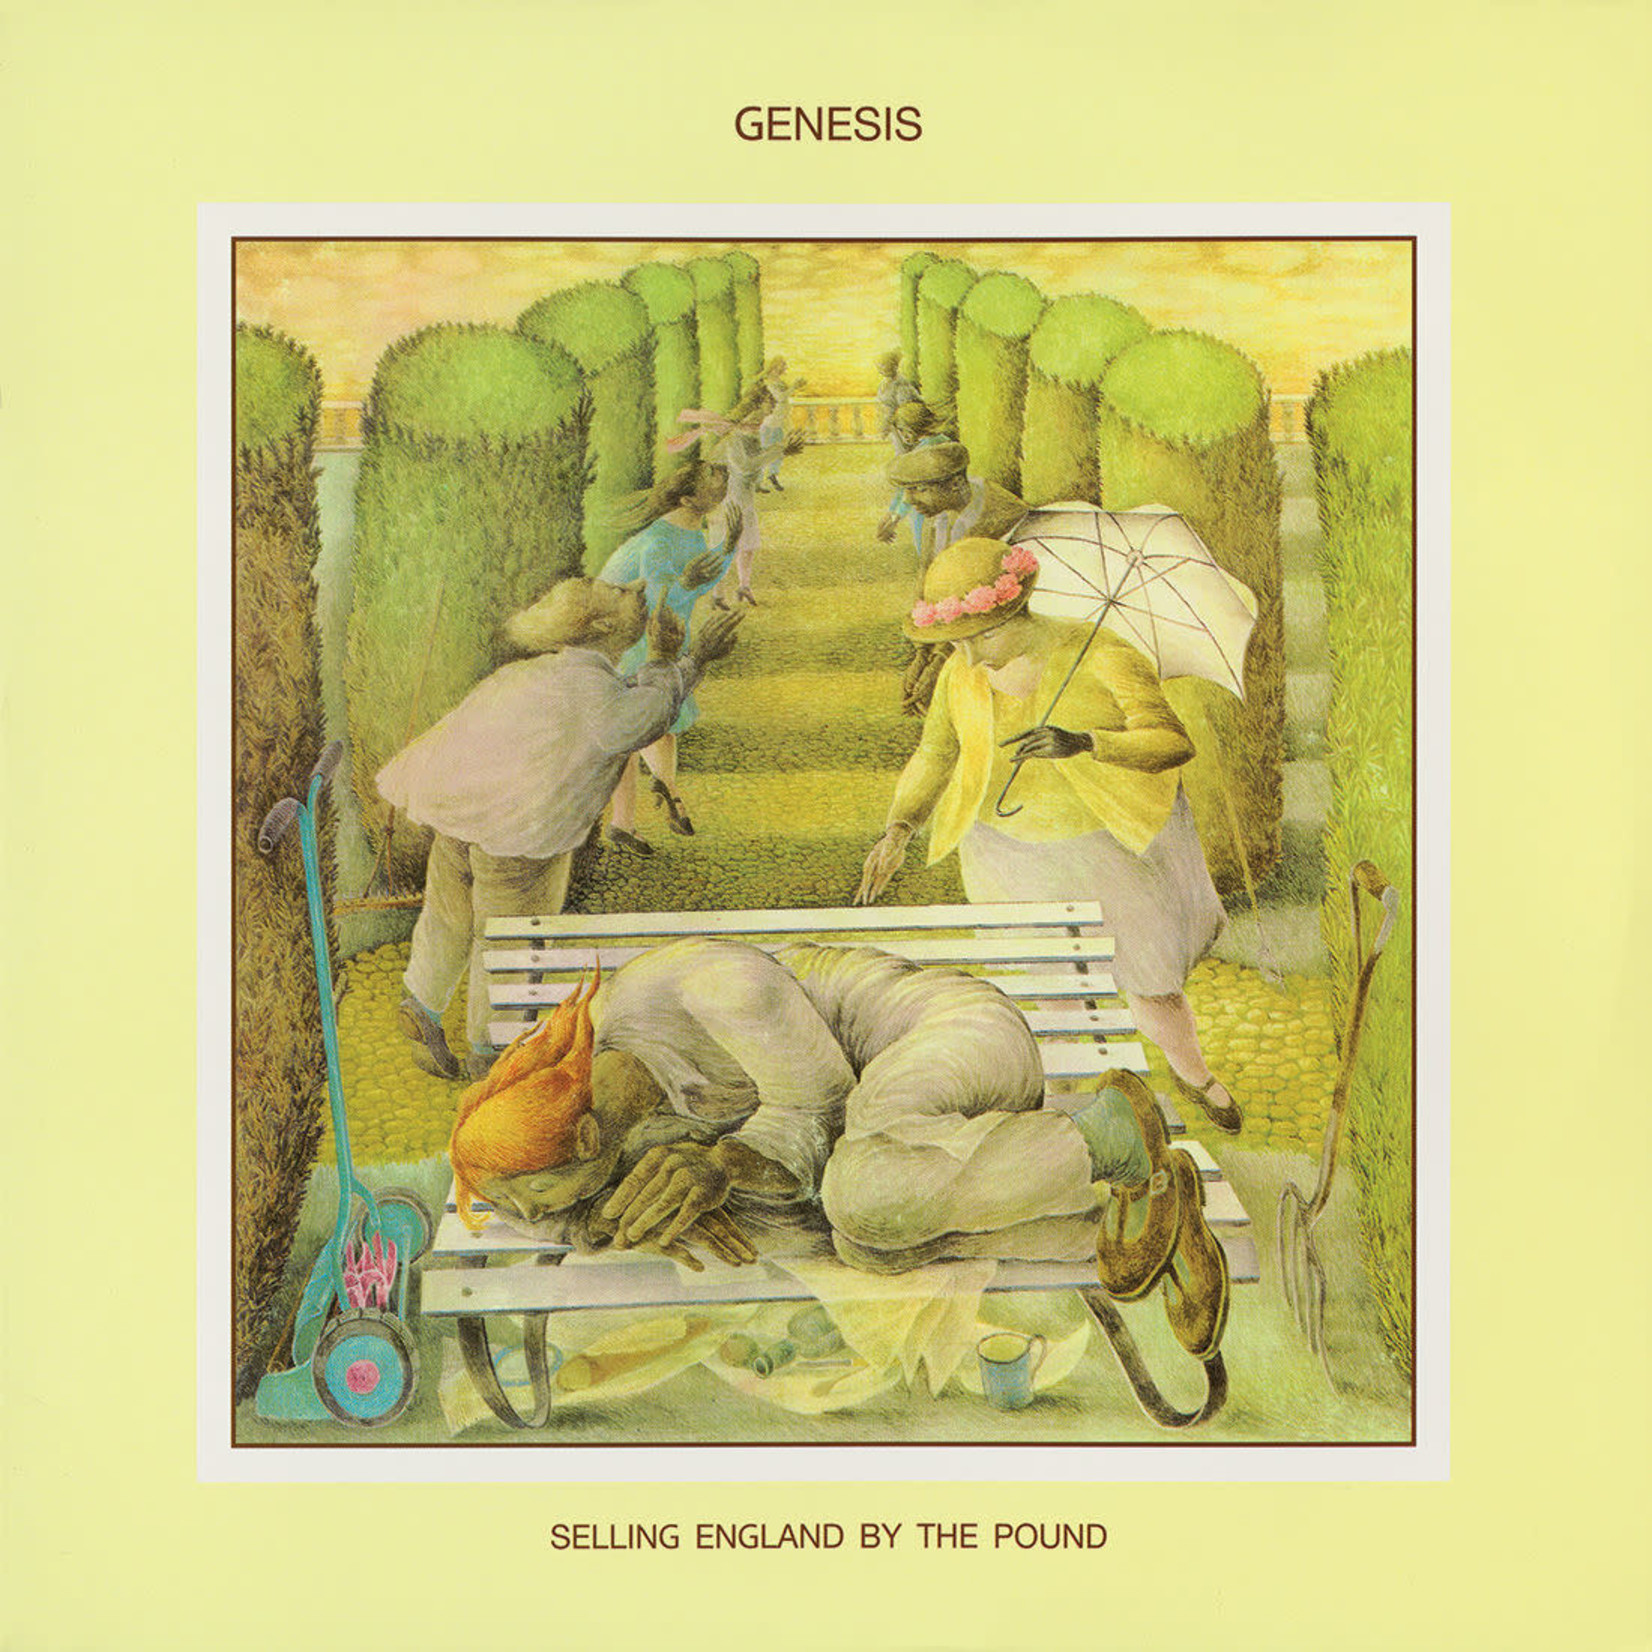 [Vintage] Genesis: Selling England by the Pound